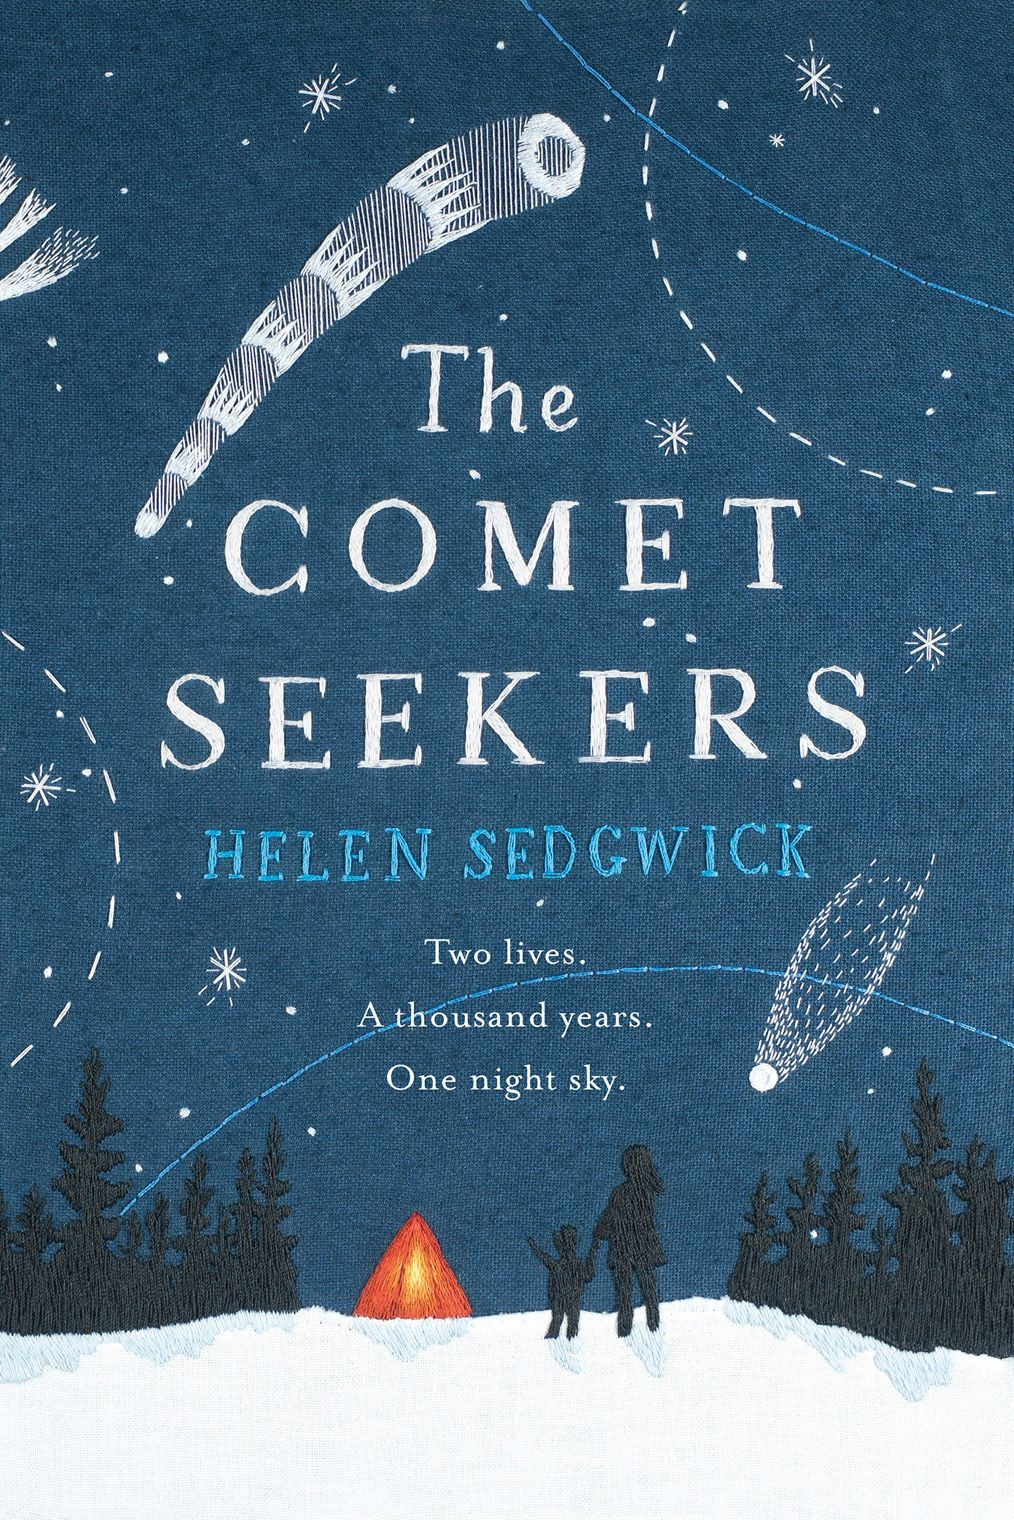 The Pool | Arts & Culture - Helen Sedgwick The Comet Seekers